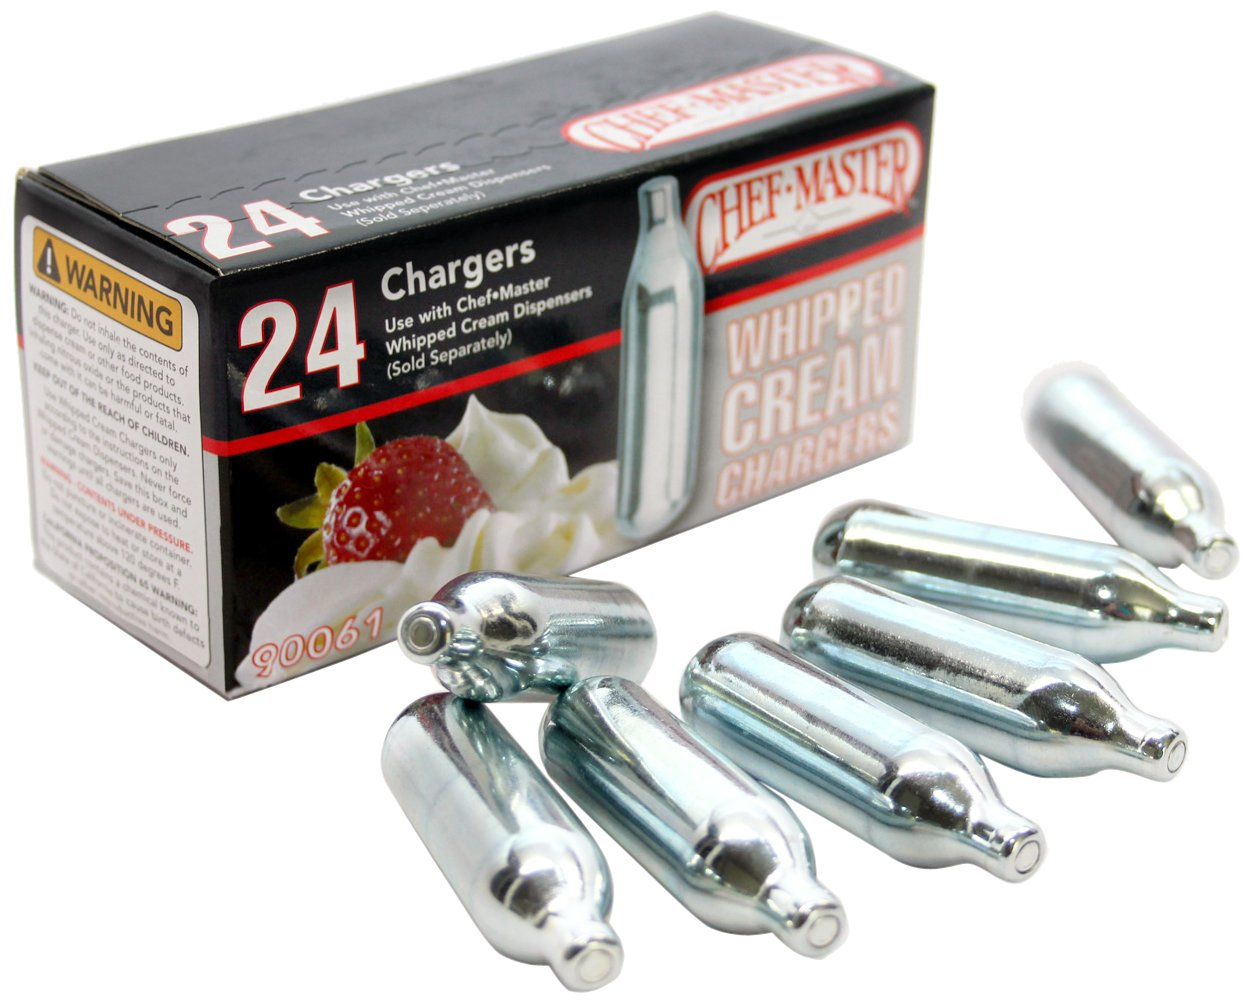 Chef Master Whipped Cream Chargers, 24-Pack Mr. Bar-B-Q Inc. 90061